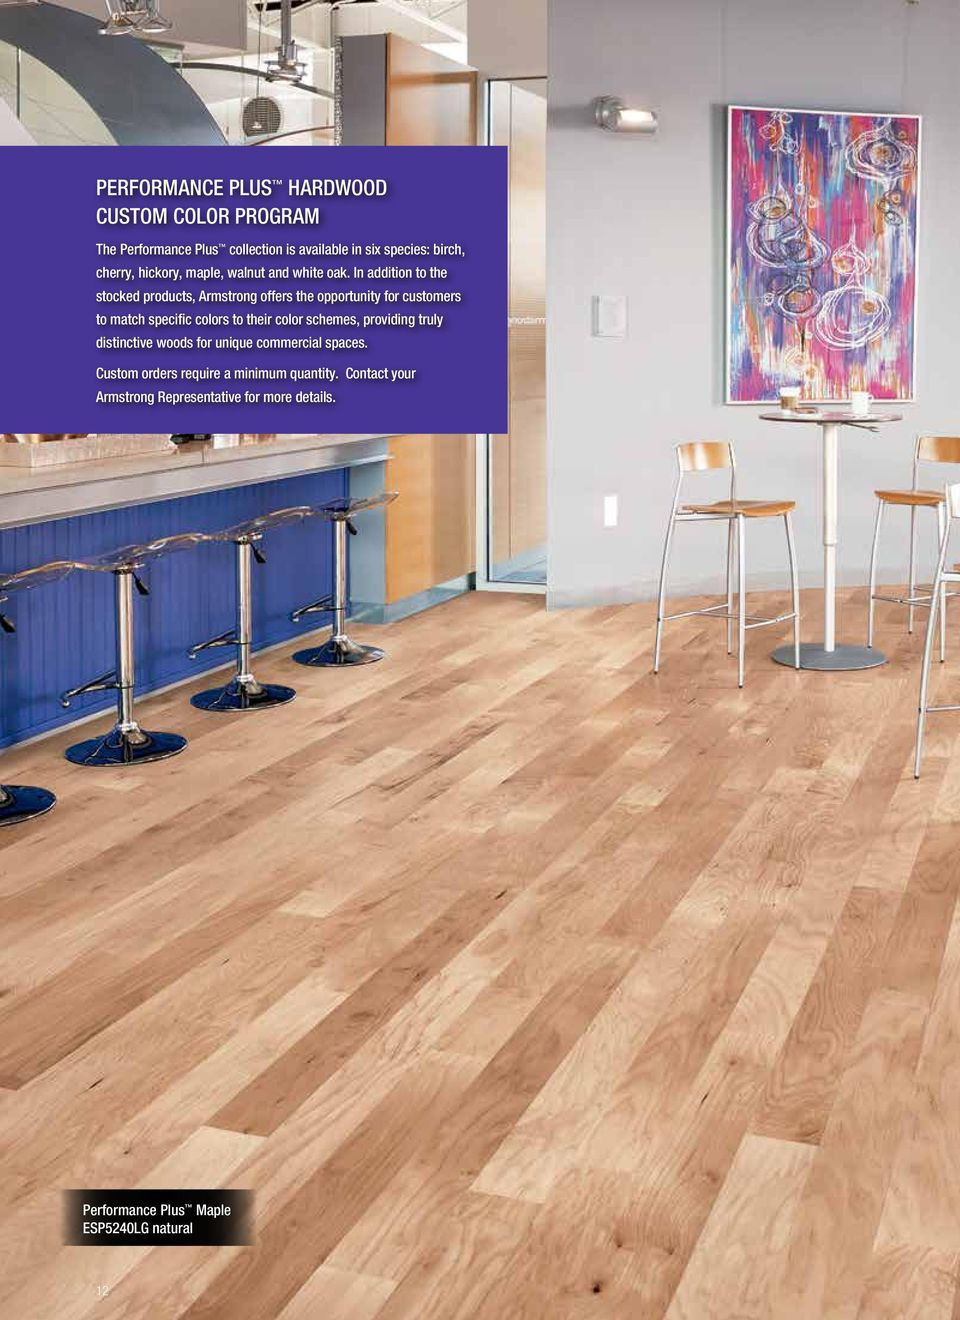 mohawk hardwood and laminate floor cleaner msds of performance plus midtown pdf with regard to in addition to the stocked products armstrong offers the opportunity for customers to match specific